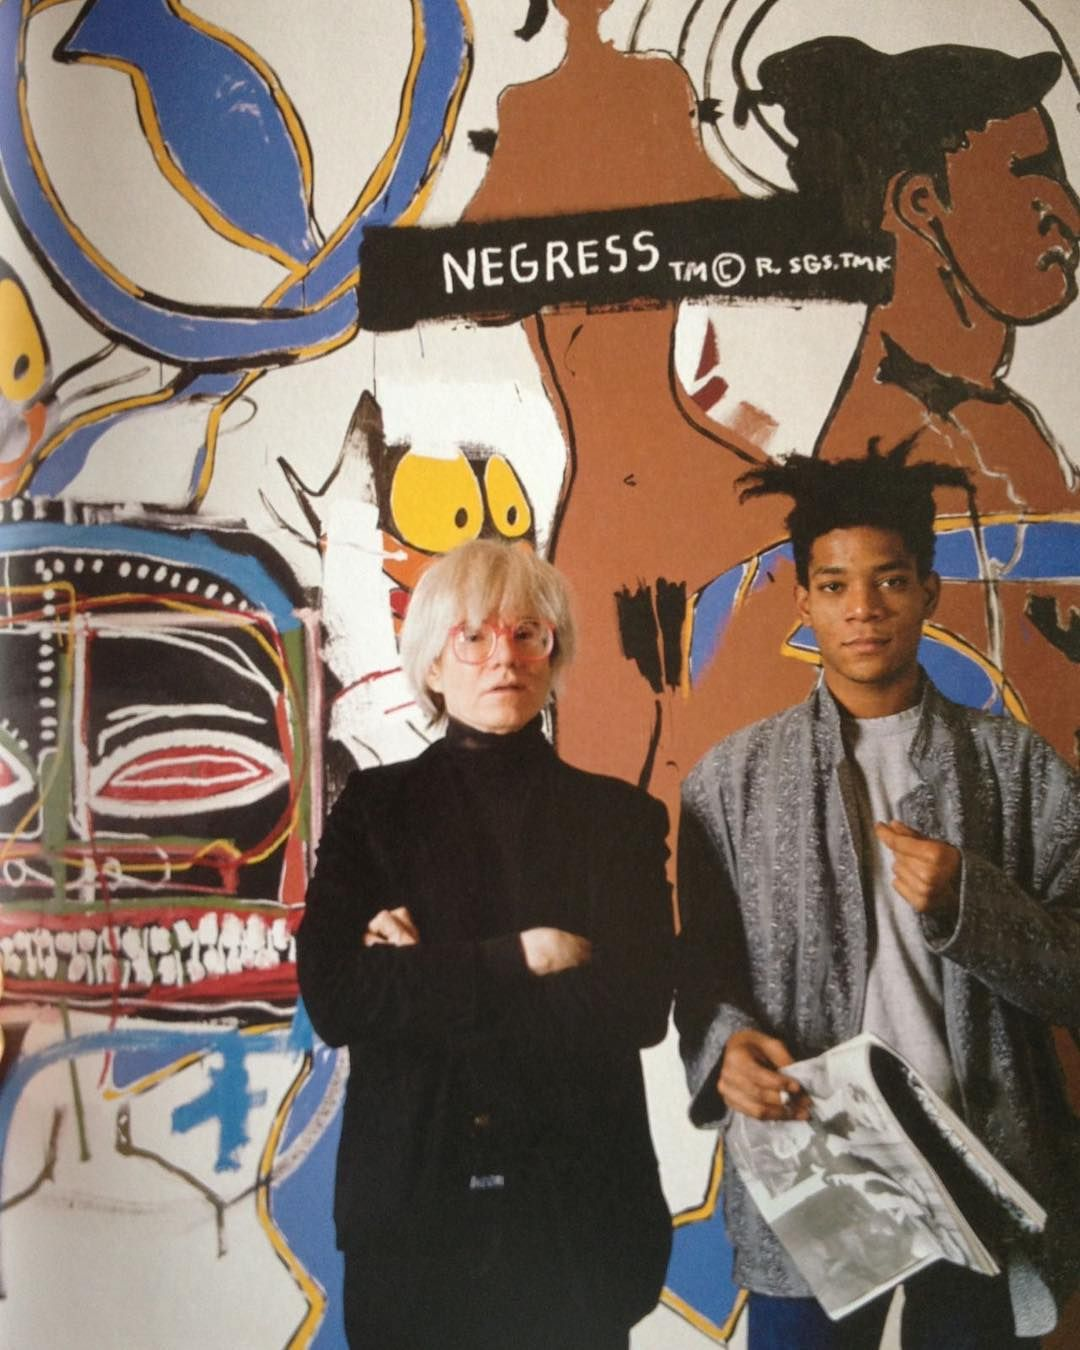 Andy Warhol and Jean-Michel Basquiat at the Tony Shafrazi Gallery during the exhibition Warhol and Basquia #andywarhol